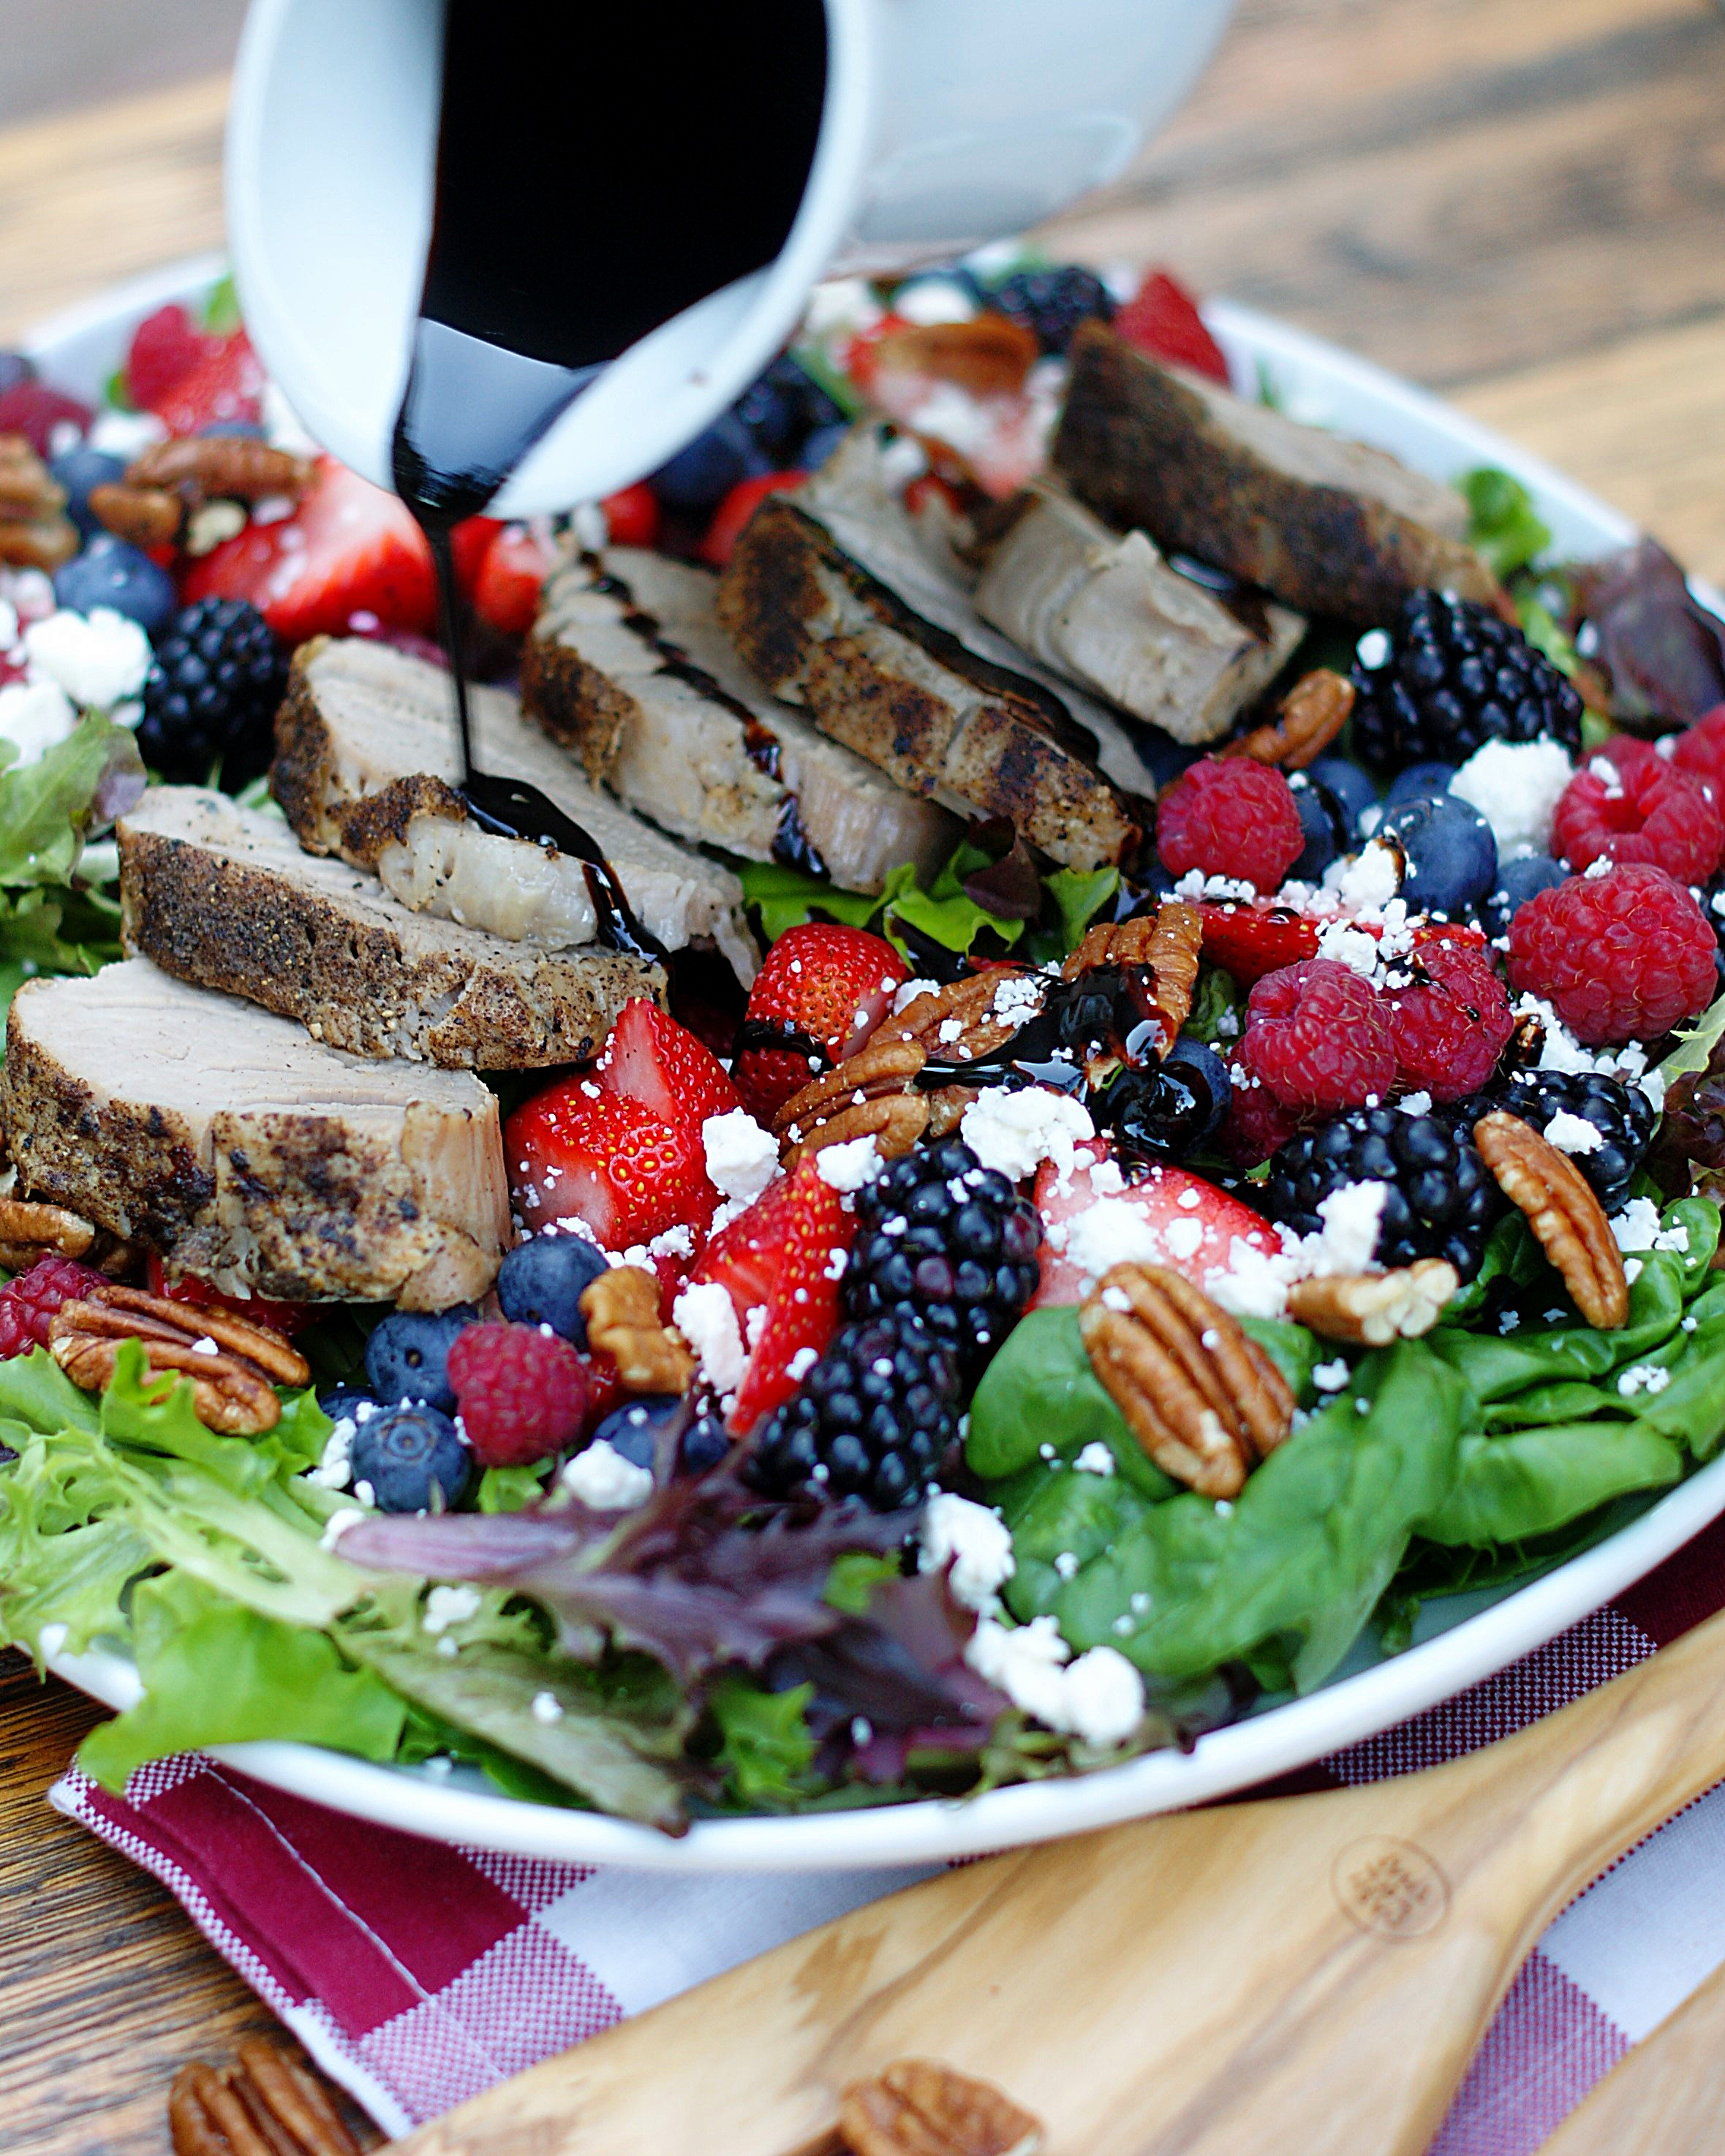 Pouring the cherry balsamic dressing on the berry salad with pork tenderloin.